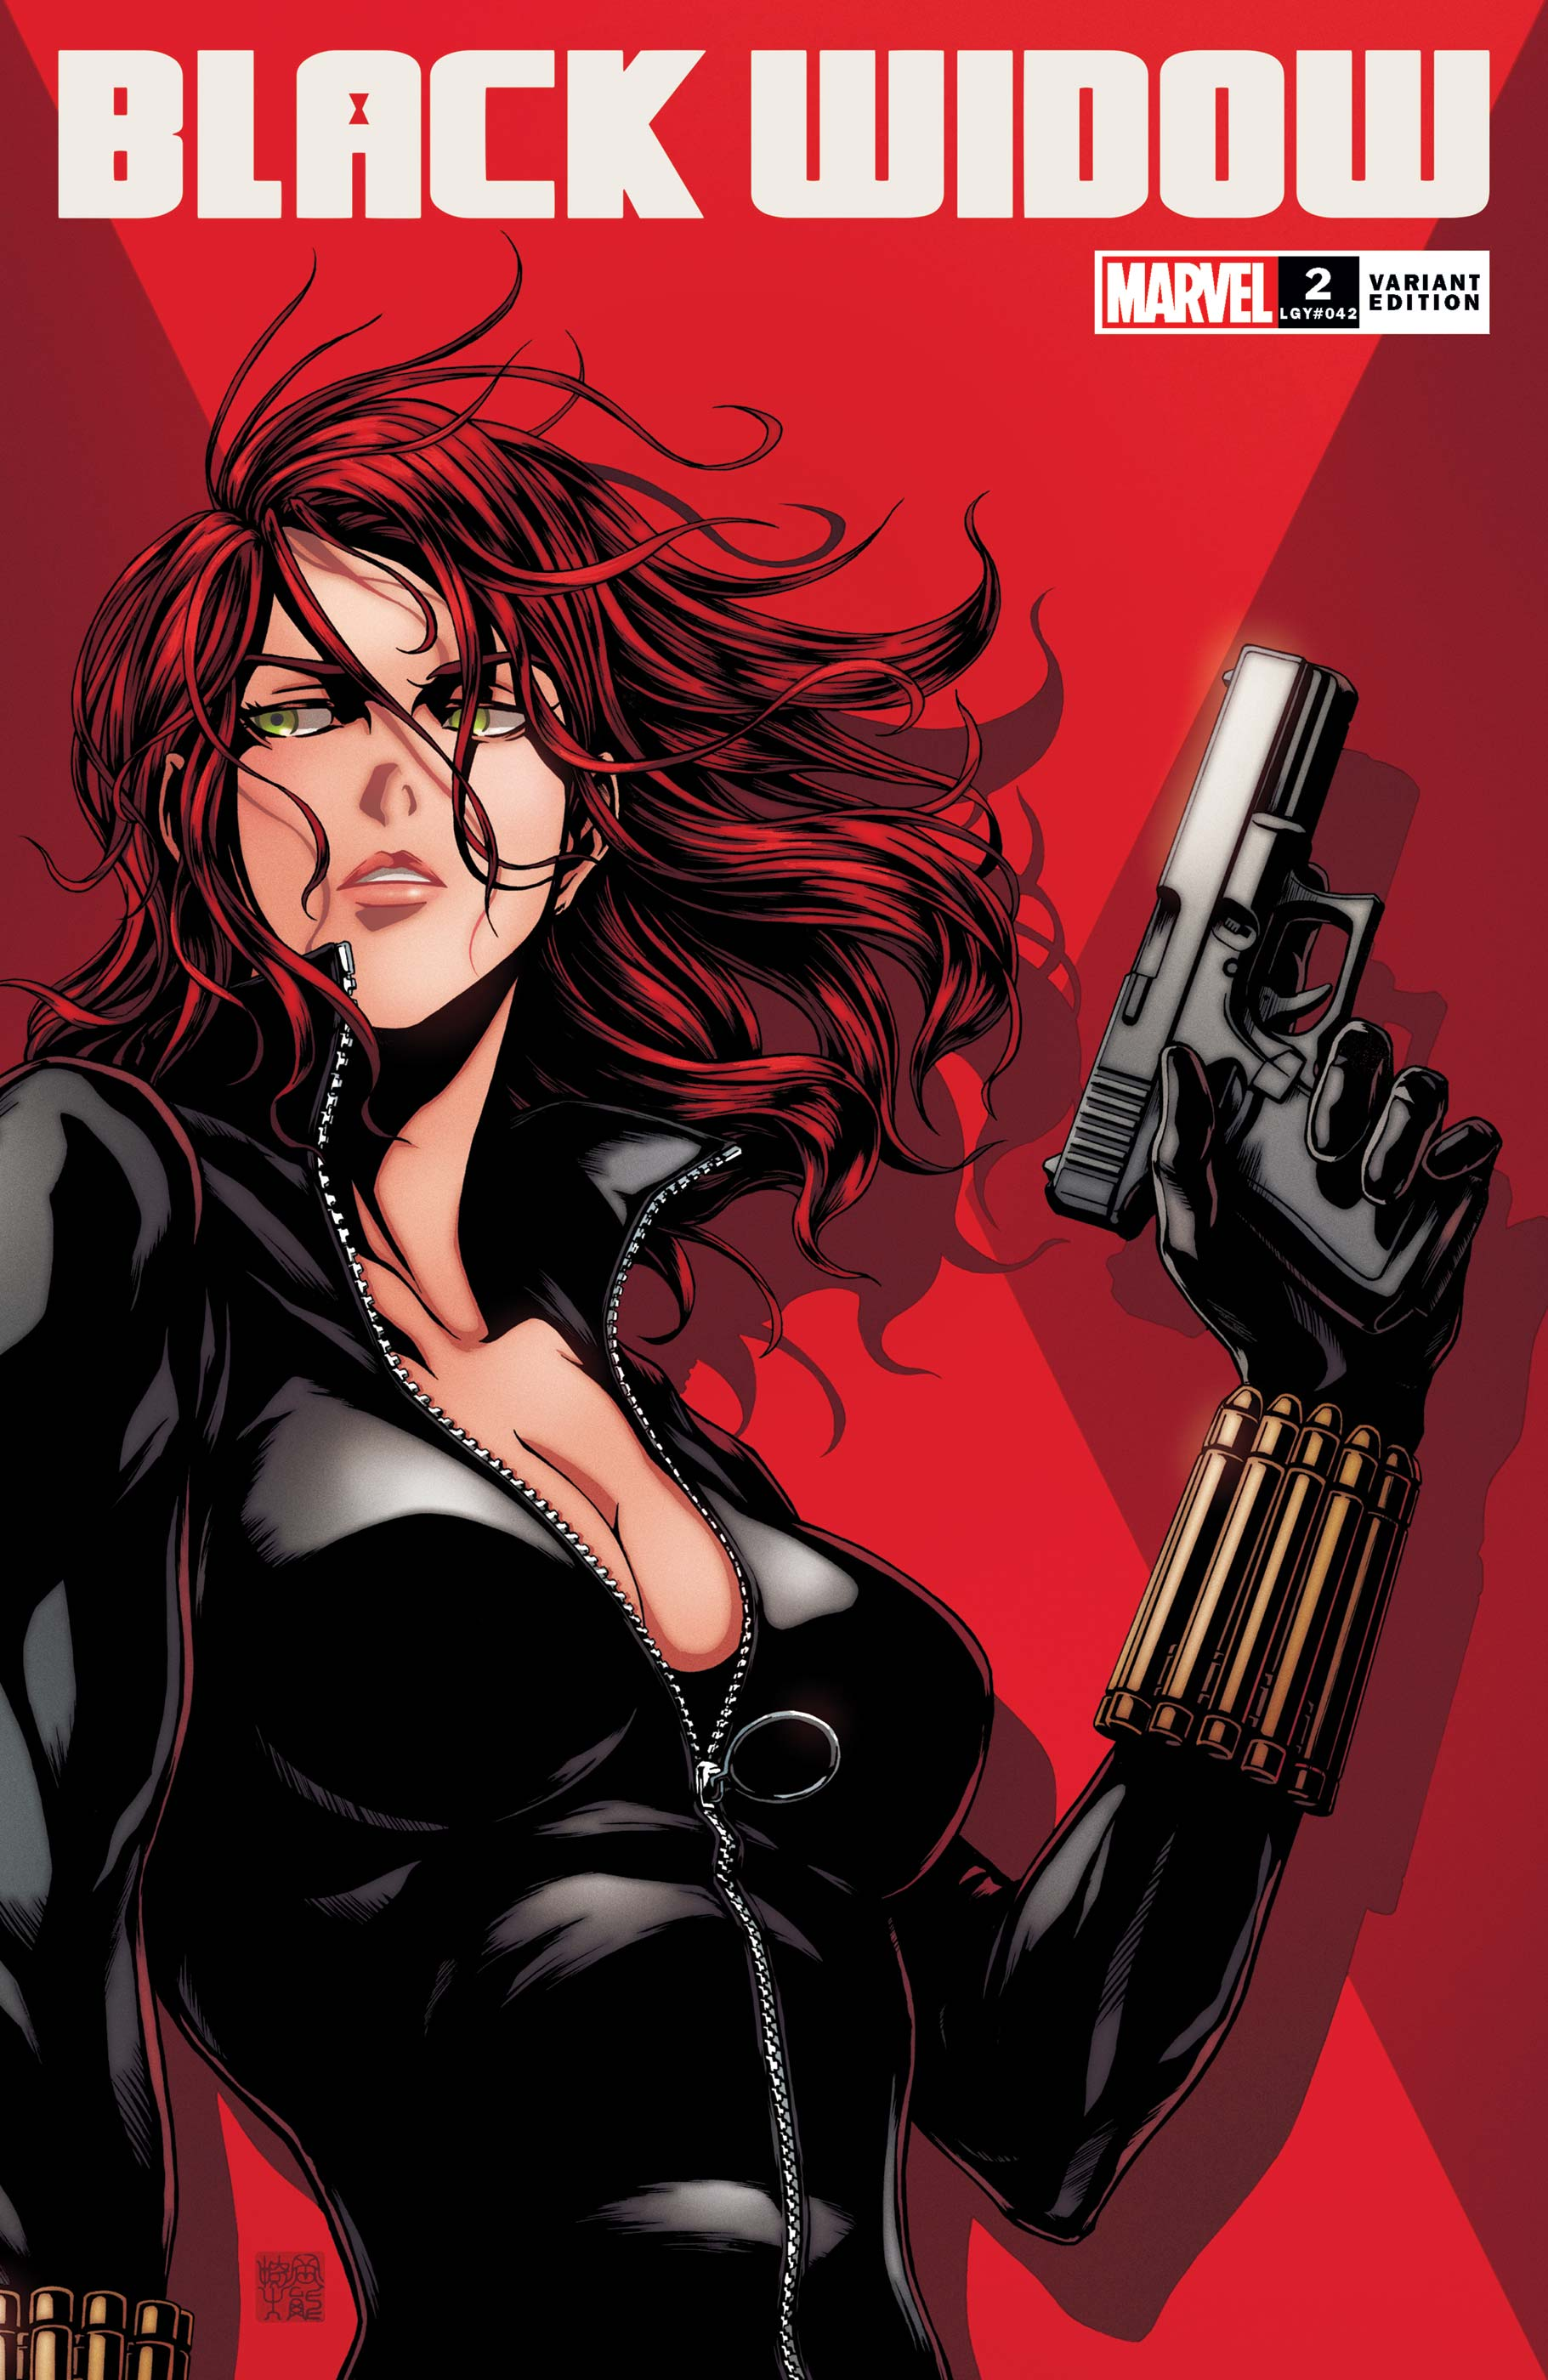 Black Widow (2020) #2 (Variant)